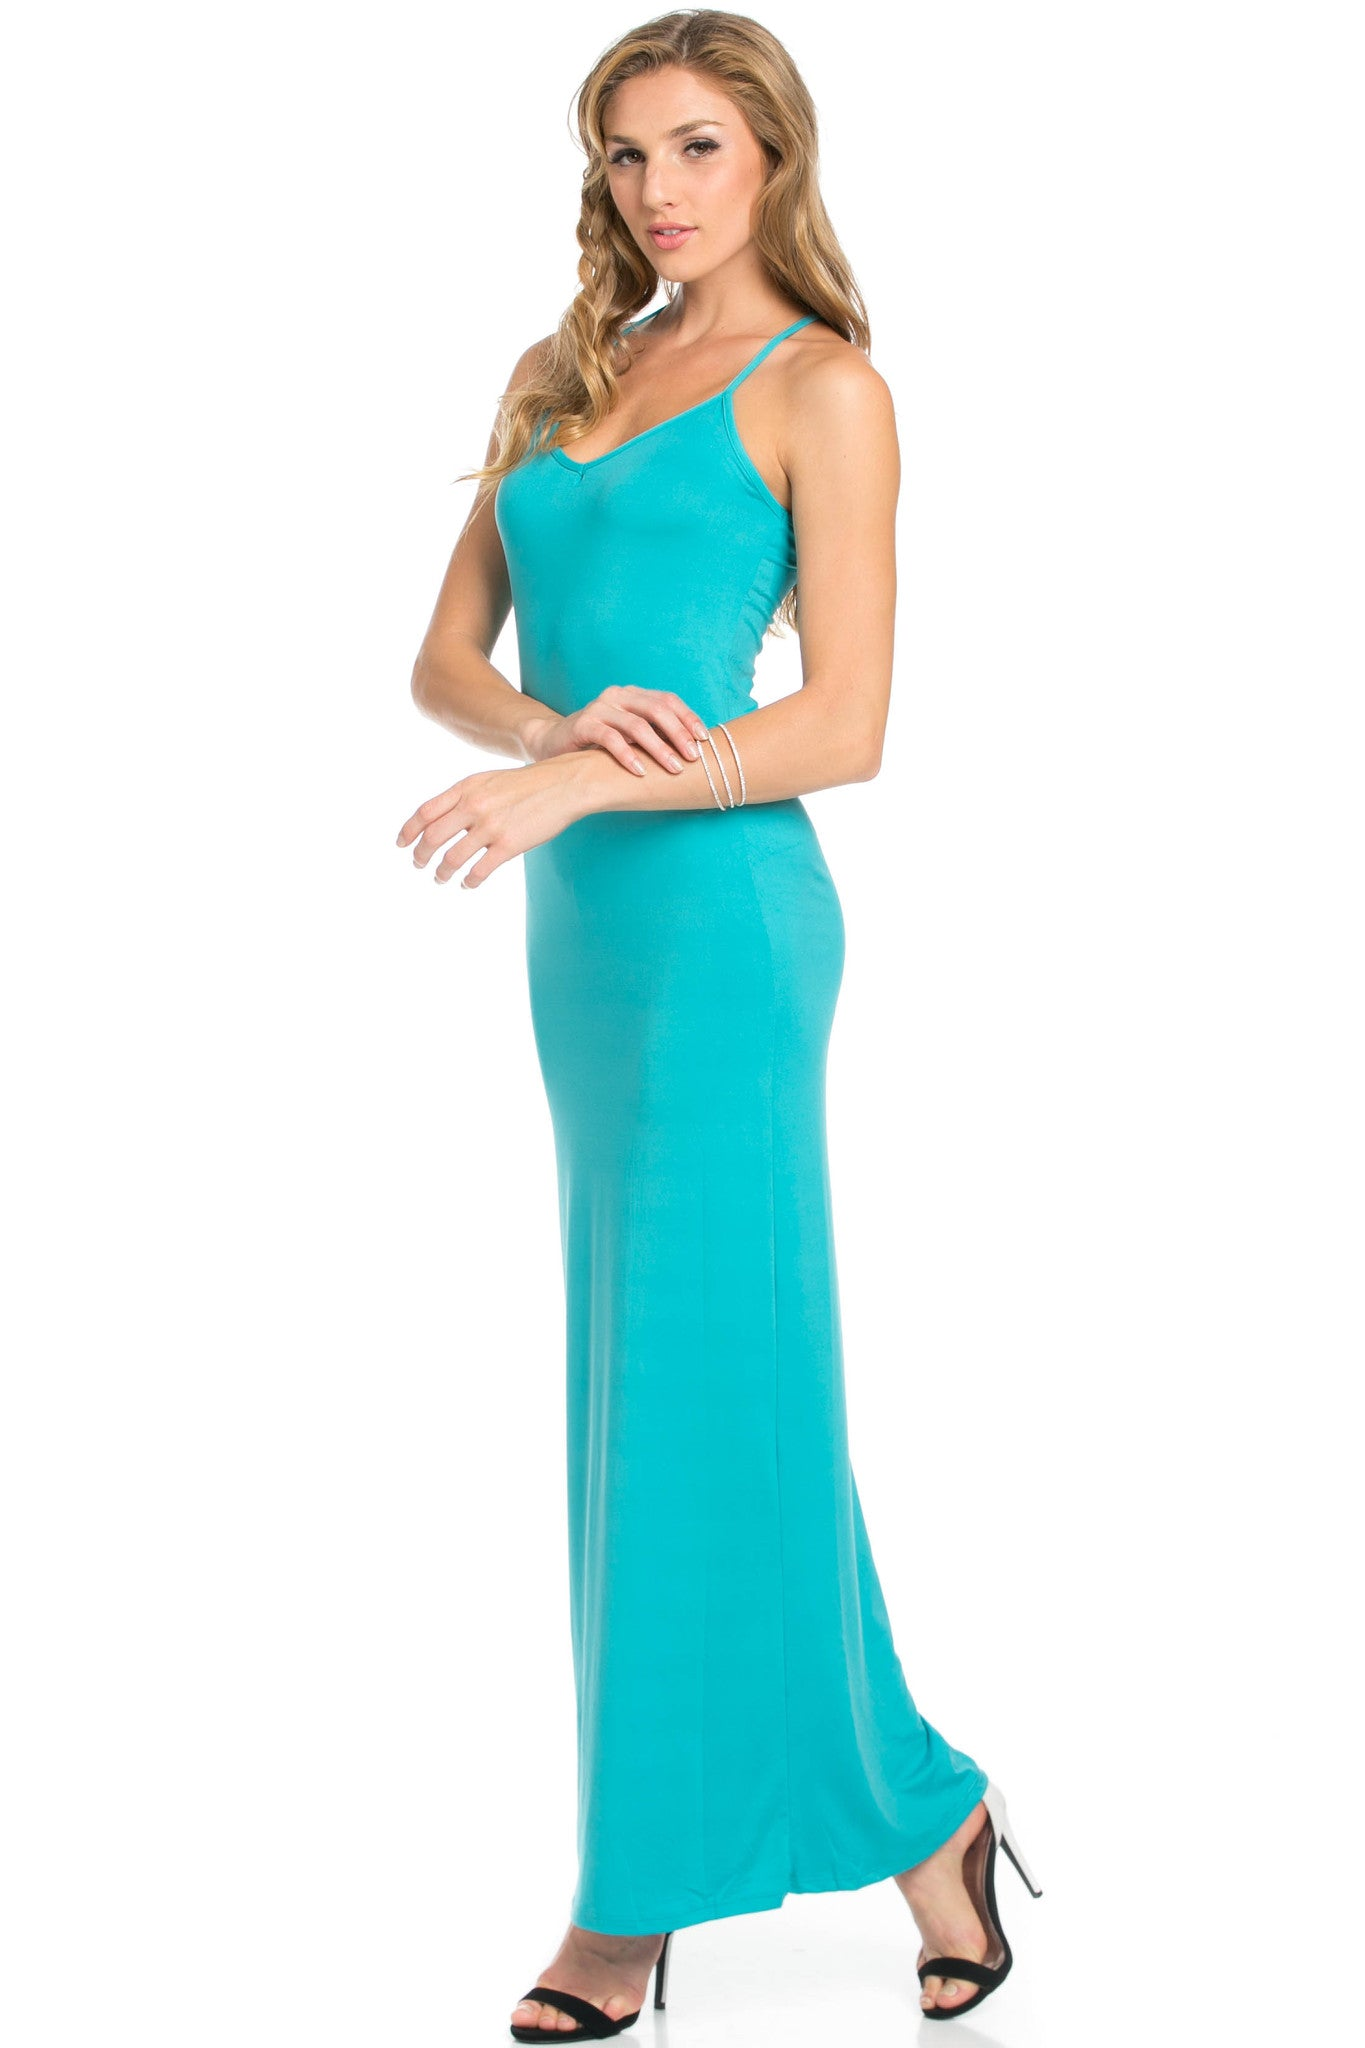 Micro Suede Jade Maxi Dress - Dresses - My Yuccie - 3